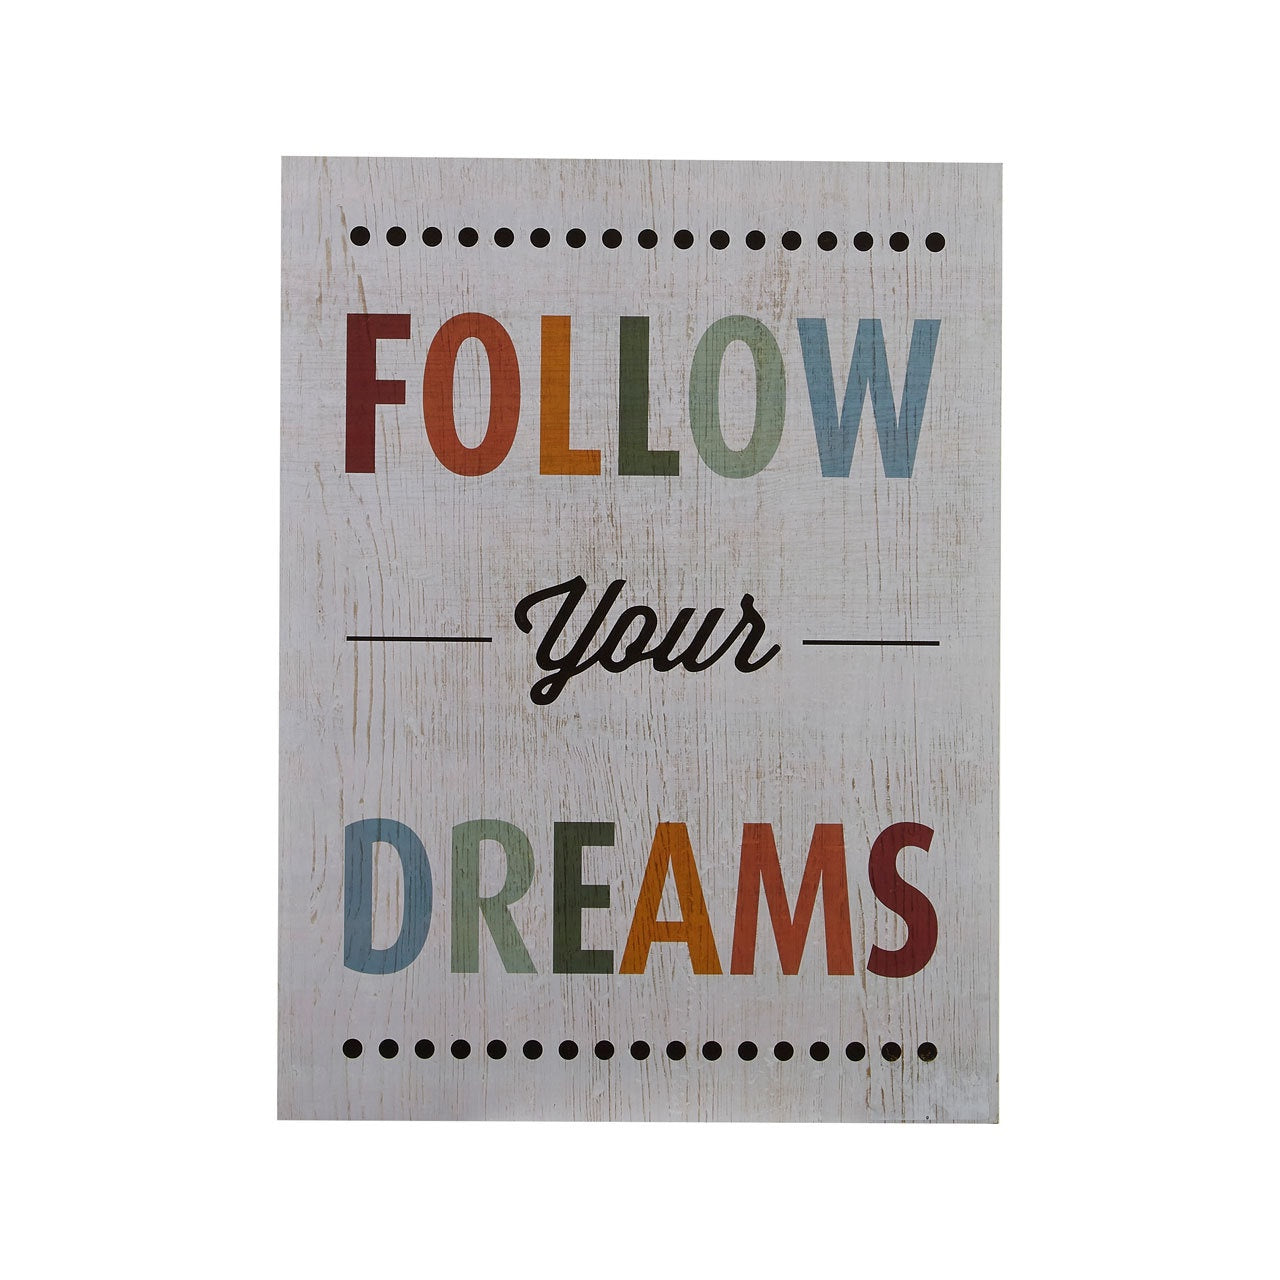 PREMIER FOLLOW YOUR DREAMS WALL PLAQUE 30 X 40CM - 2800749